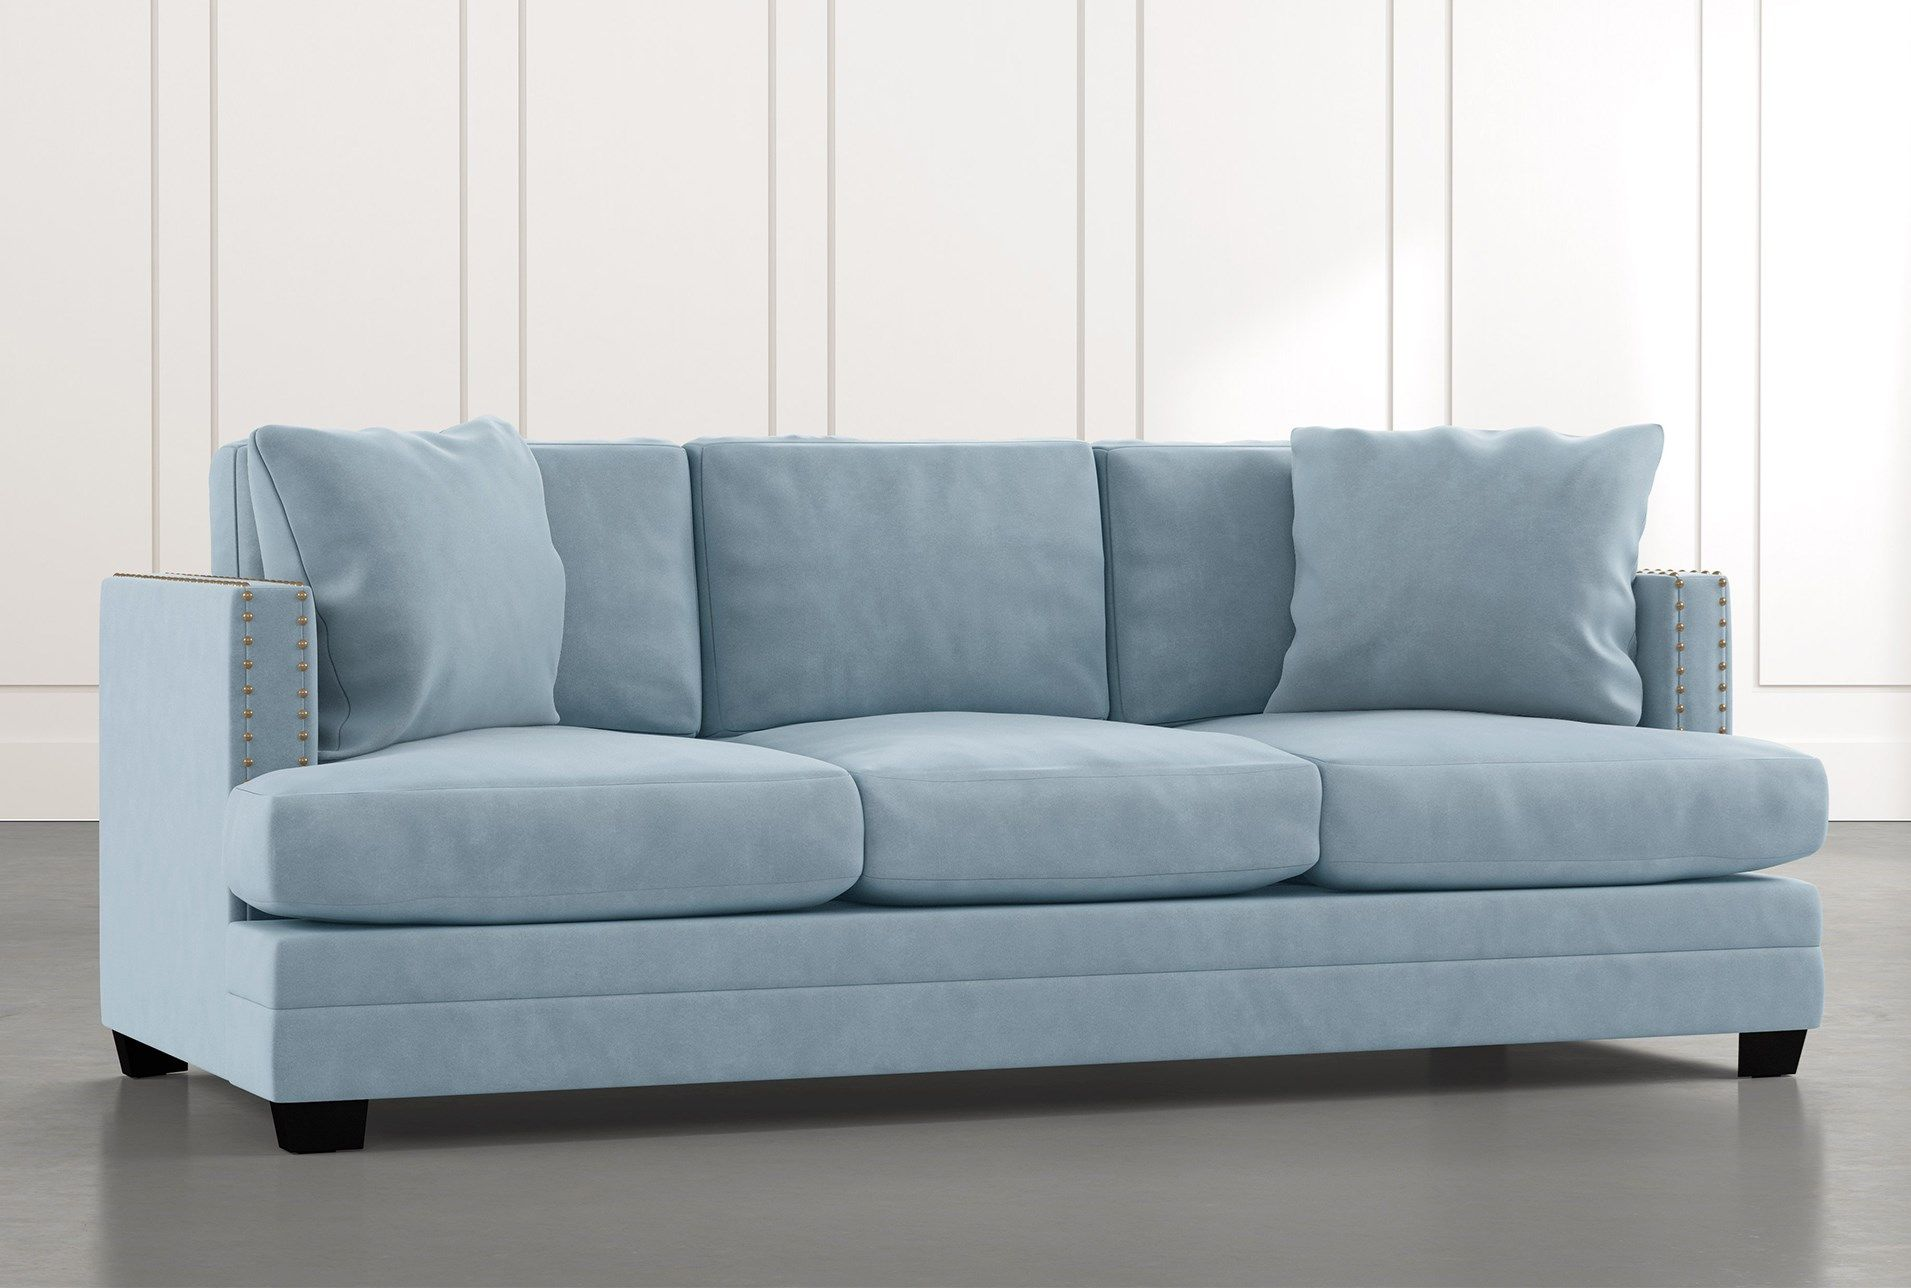 Kiara Ii Light Blue Sofa Light Blue Sofa Blue Sofa Light Blue Couches